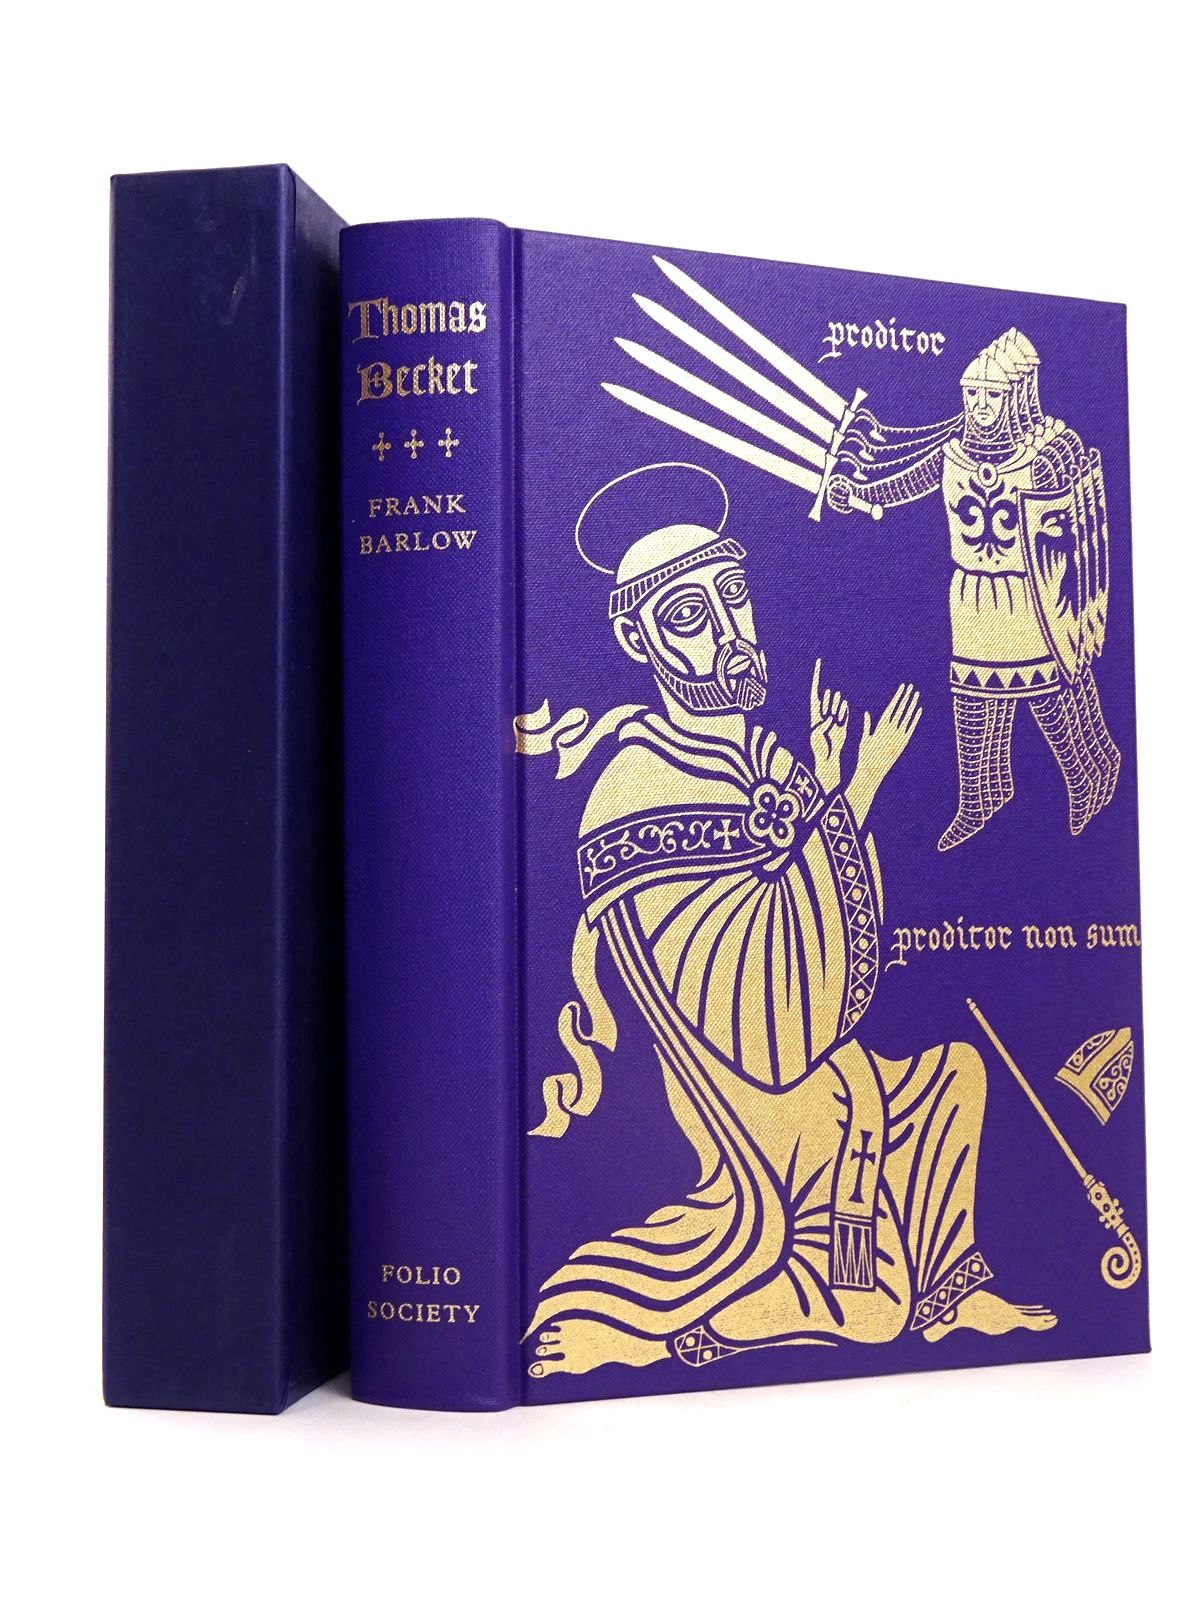 Photo of THOMAS BECKET written by Barlow, Frank published by Folio Society (STOCK CODE: 1818652)  for sale by Stella & Rose's Books